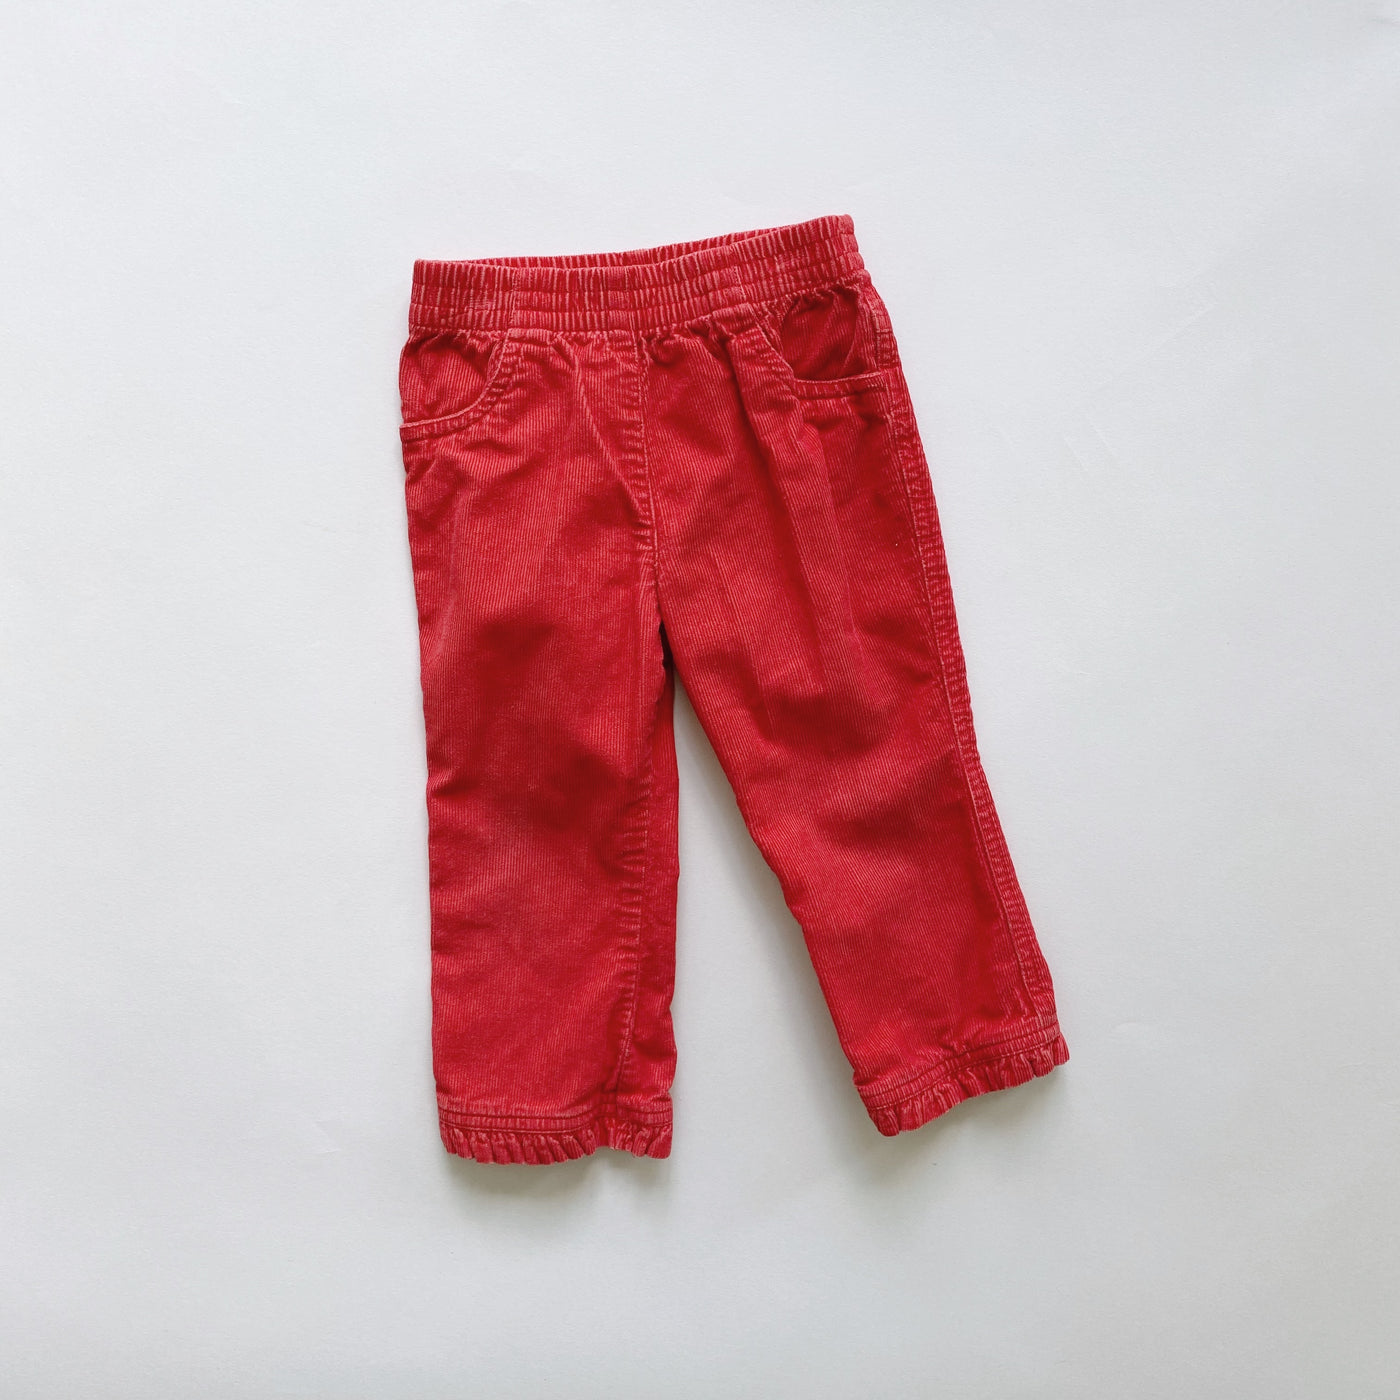 Okie-Dokie Red Cords / Size 2T